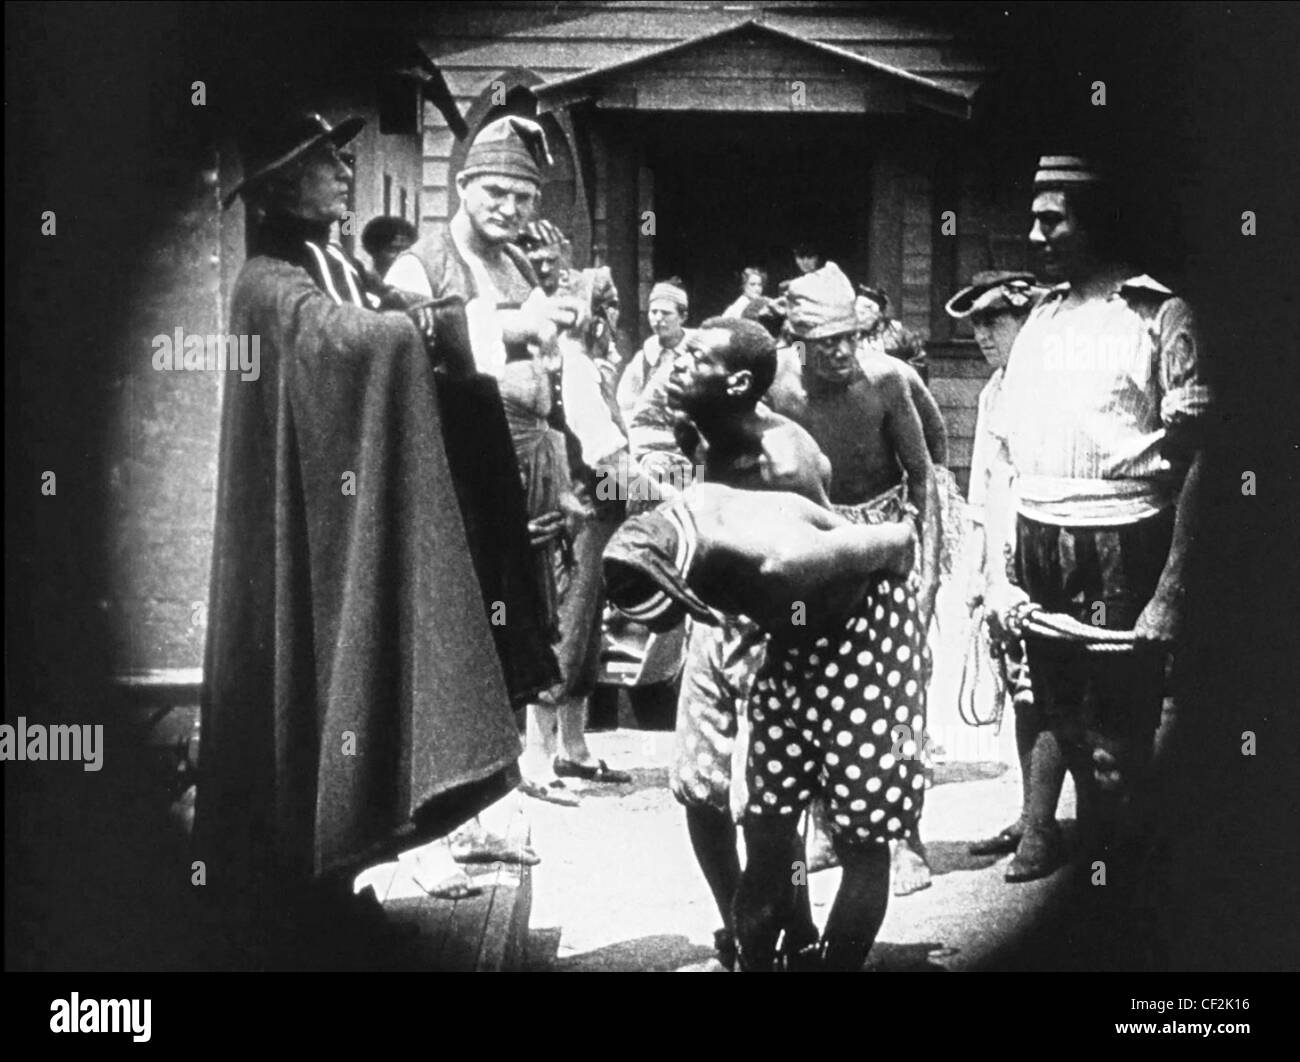 THE BIRTH OF A NATION (1915) D.W. GRIFFITH (DIR) 007 MOVIESTORE COLLECTION LTD - Stock Image